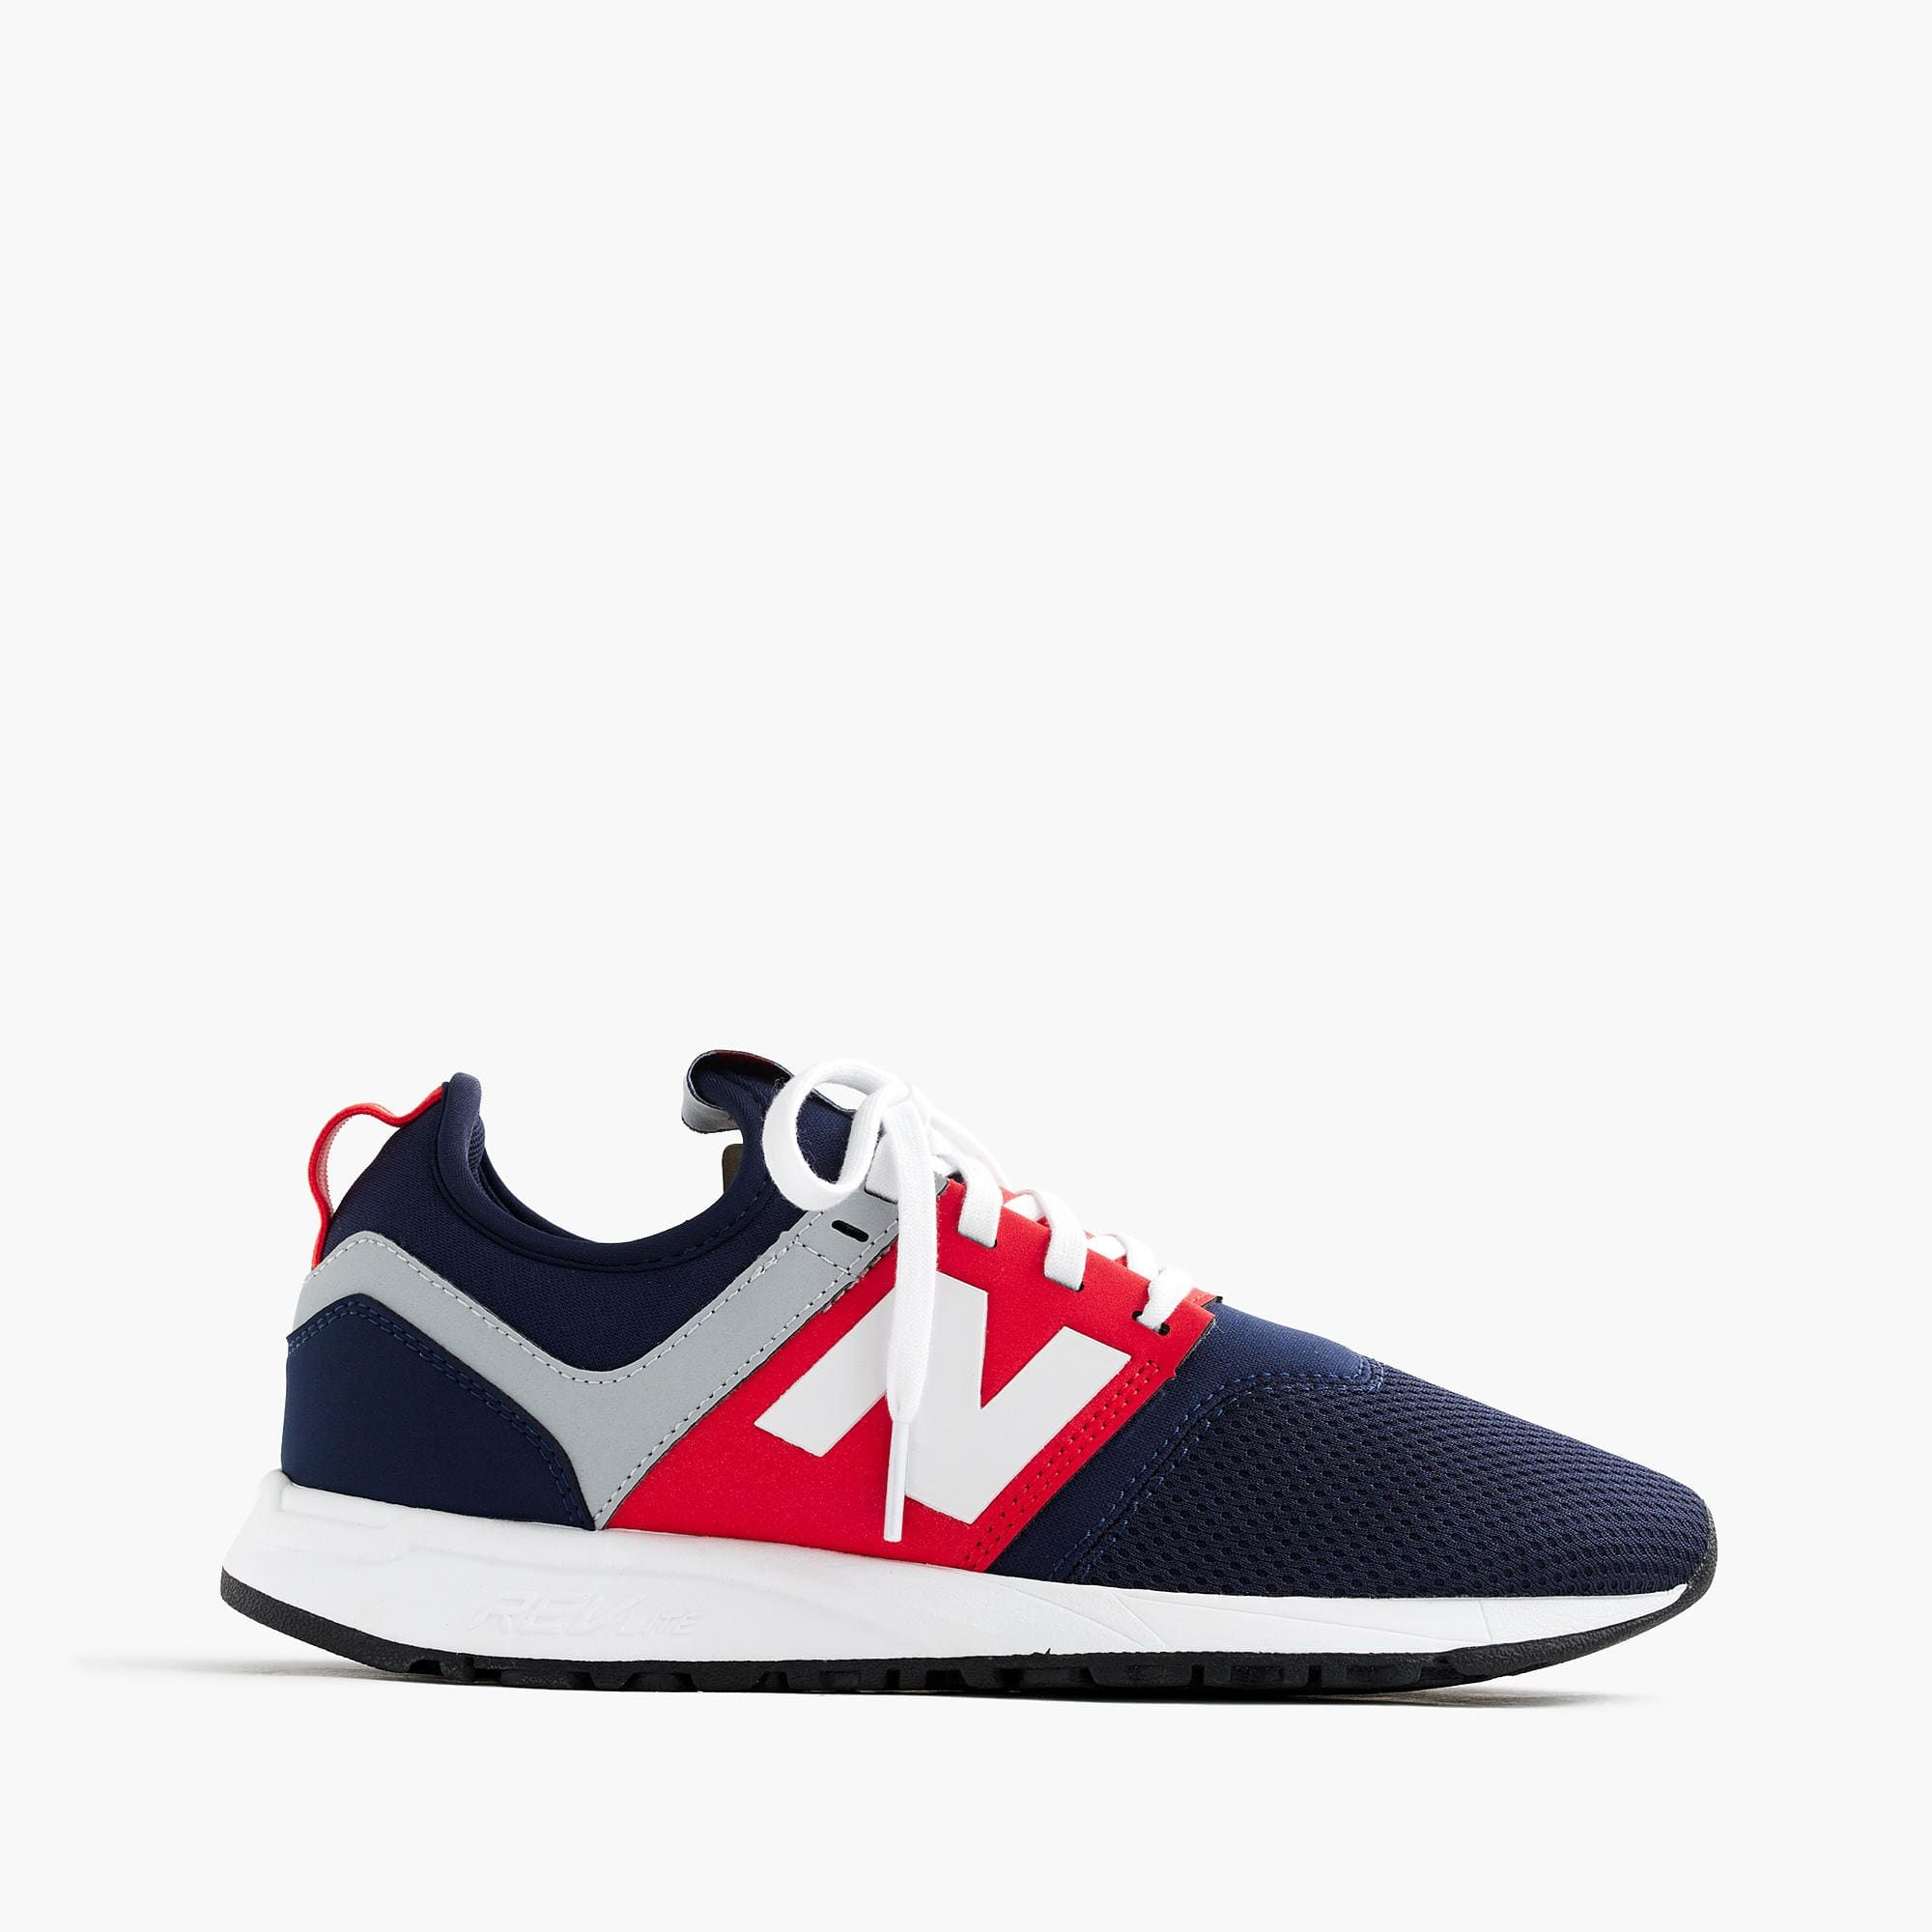 NEW BALANCE® for J.Crew - Women's 247 Sneakers in Blue/Red/